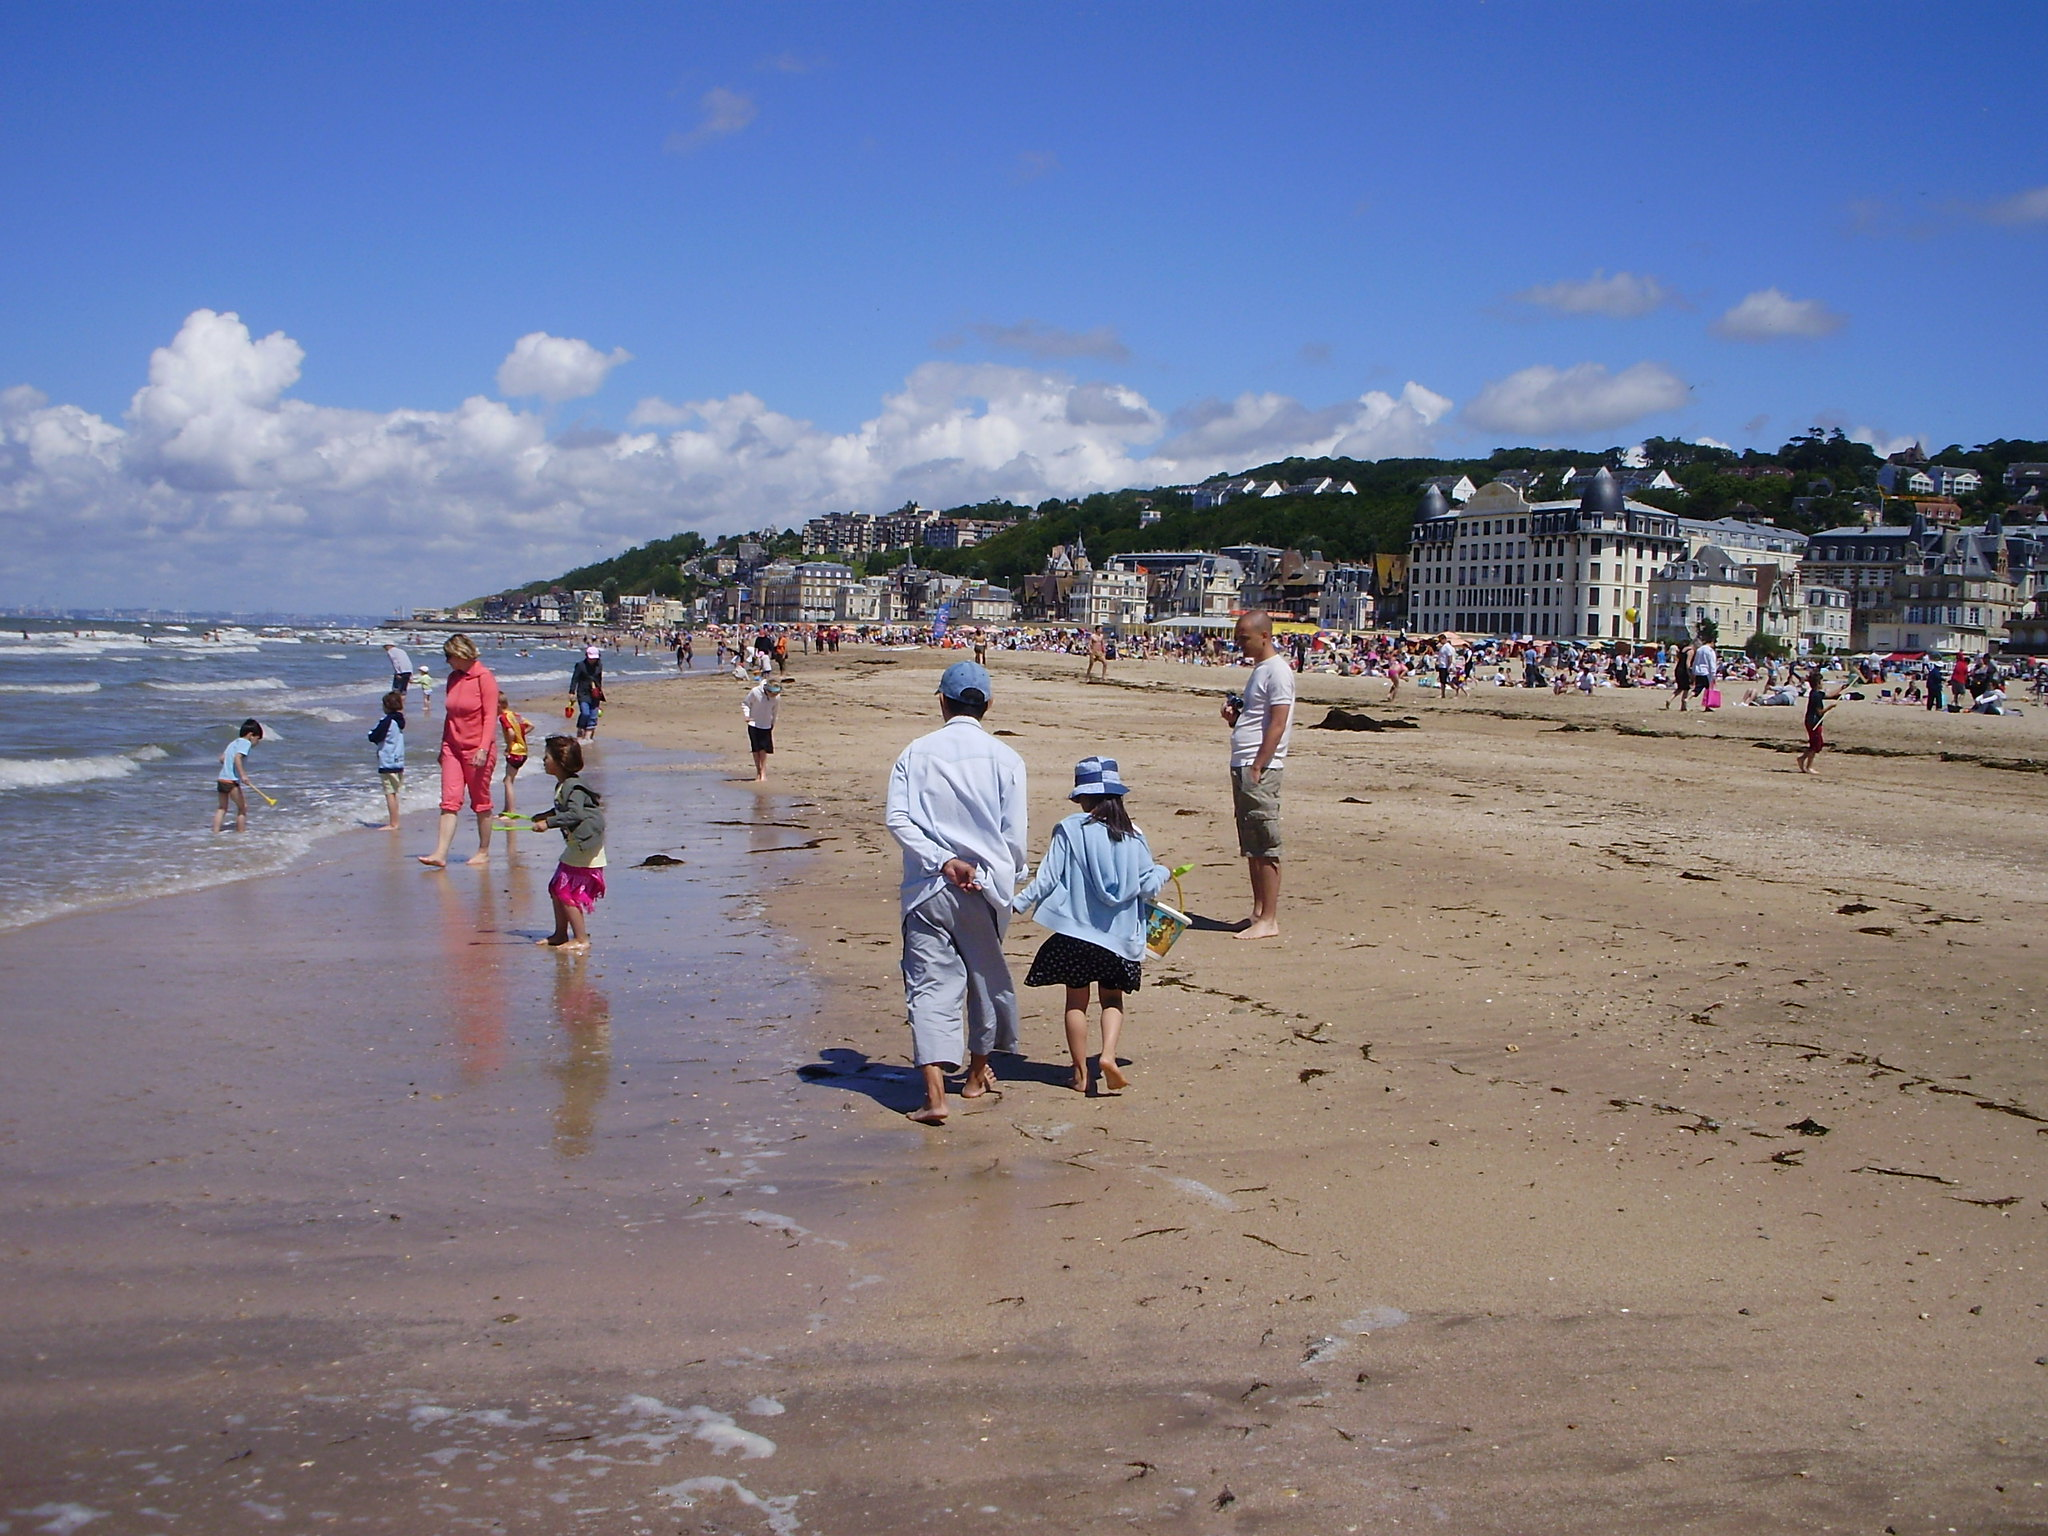 Beachgoers enjoy an afternoon stroll in Deauville, dipping in and out of the playful waves.